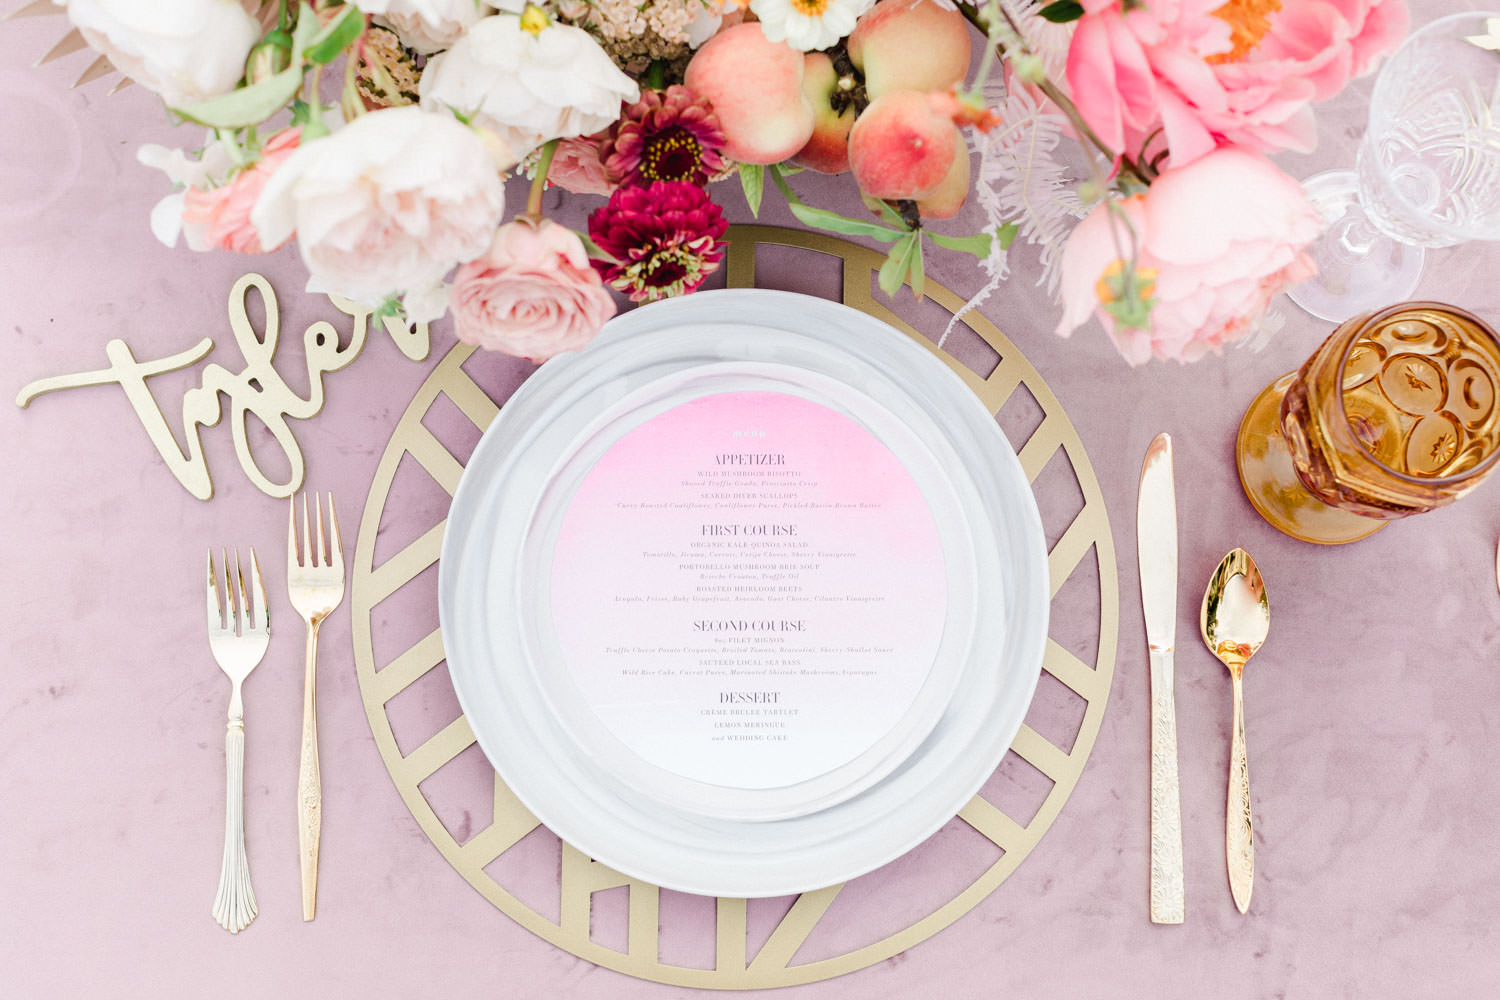 Ombre pink menu, Gold laser cut wooden name card place setting, Rose quartz velvet linen table with orange glassware and marble dinnerware, Pink peach violet and white floral arrangement, Wedding at Estancia La Jolla, Cavin Elizabeth Photography